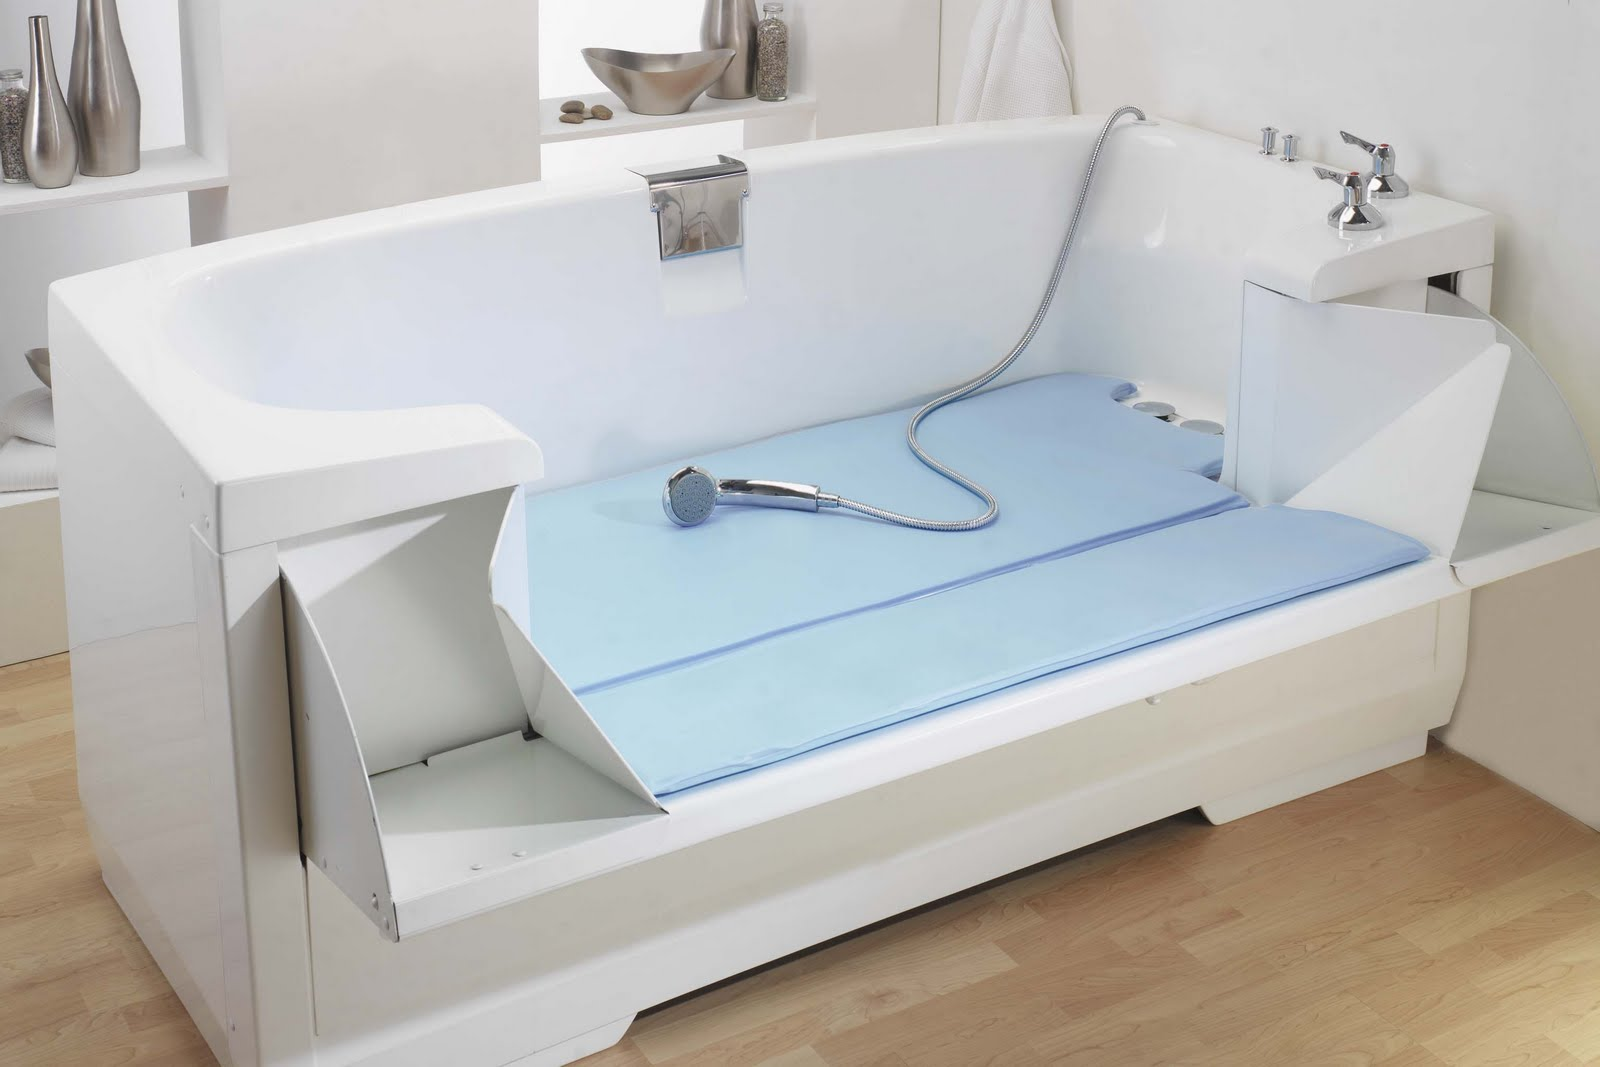 Bathtubs for the elderly and disabled | Disabled bathroom